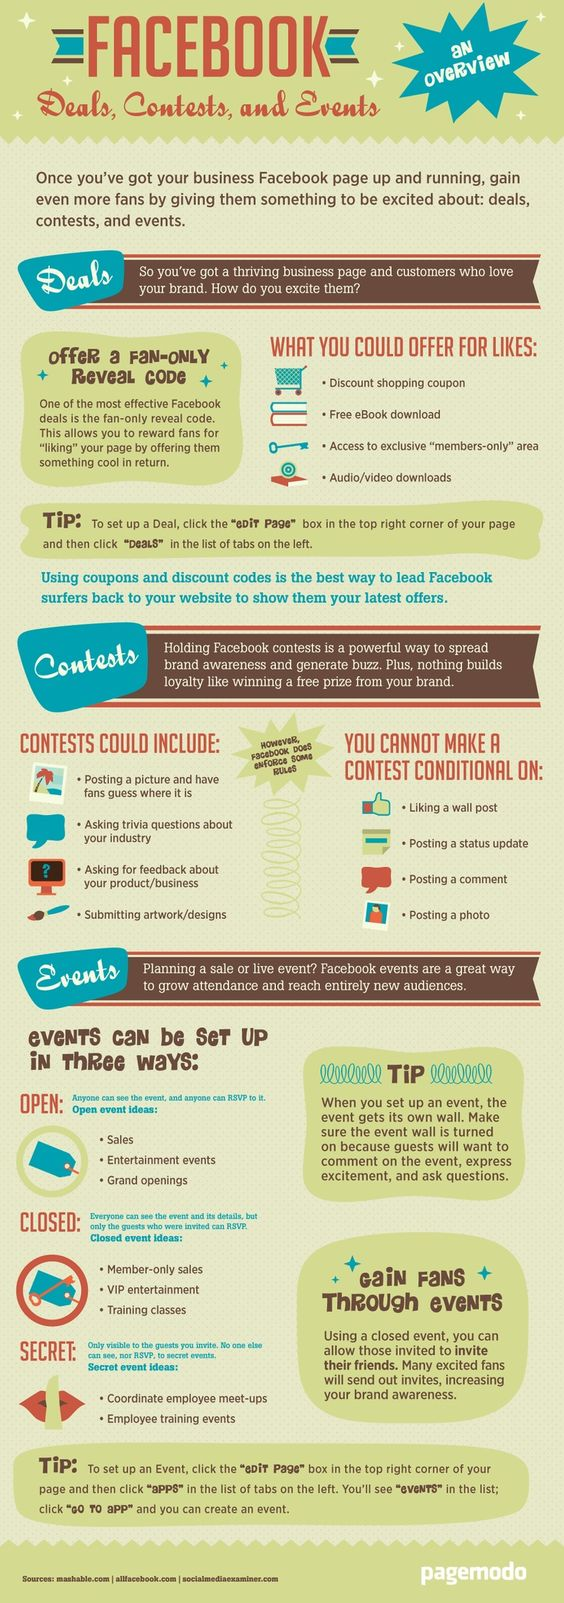 Facebook Deals, Contests, and Events Tips [Infographic] - Infographics King